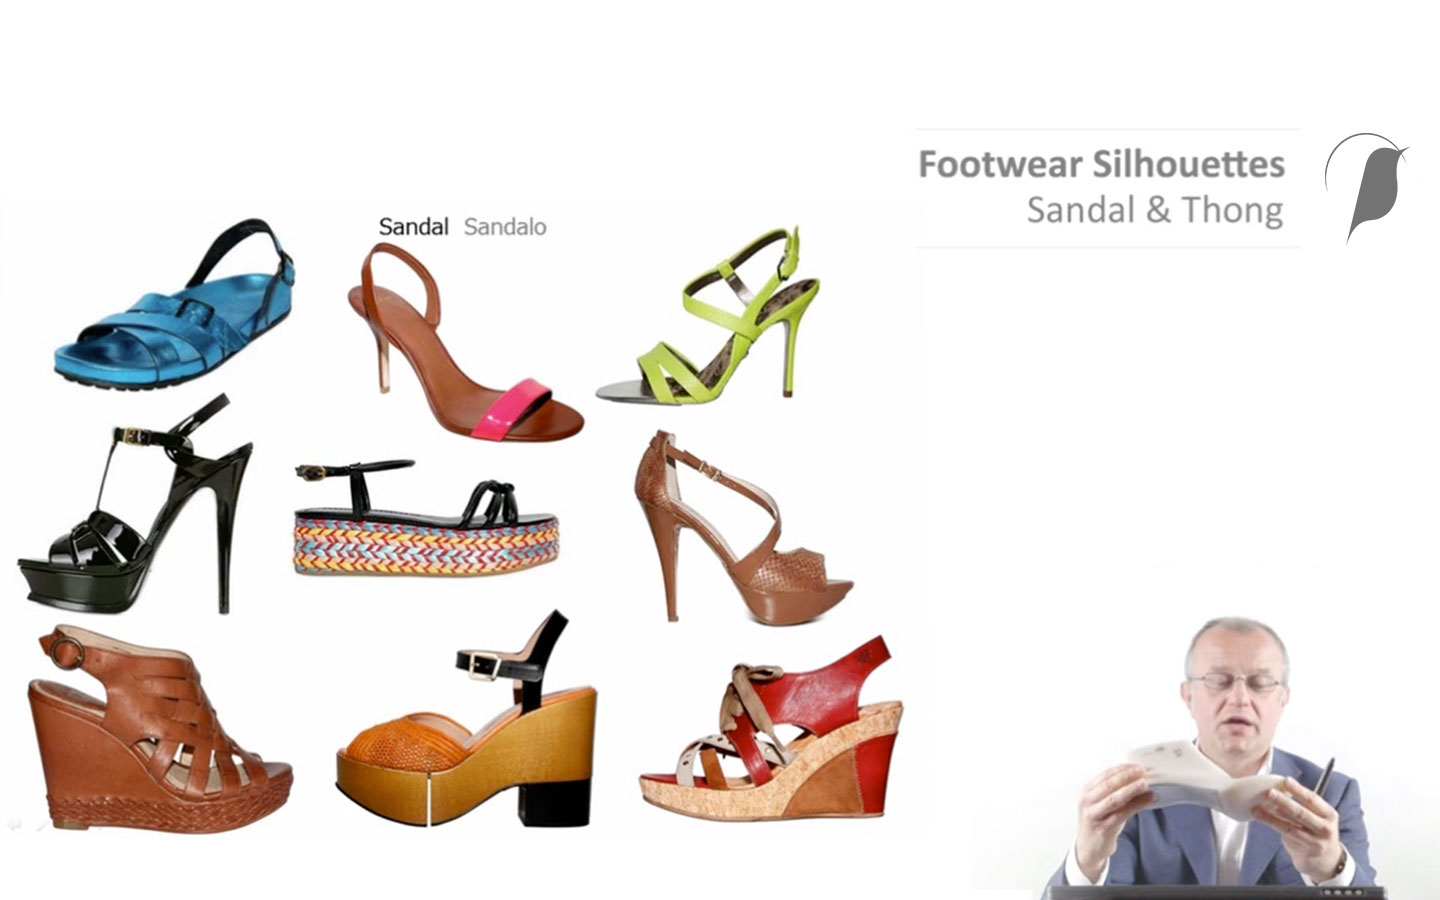 e-Learning: Footwear Silhouettes